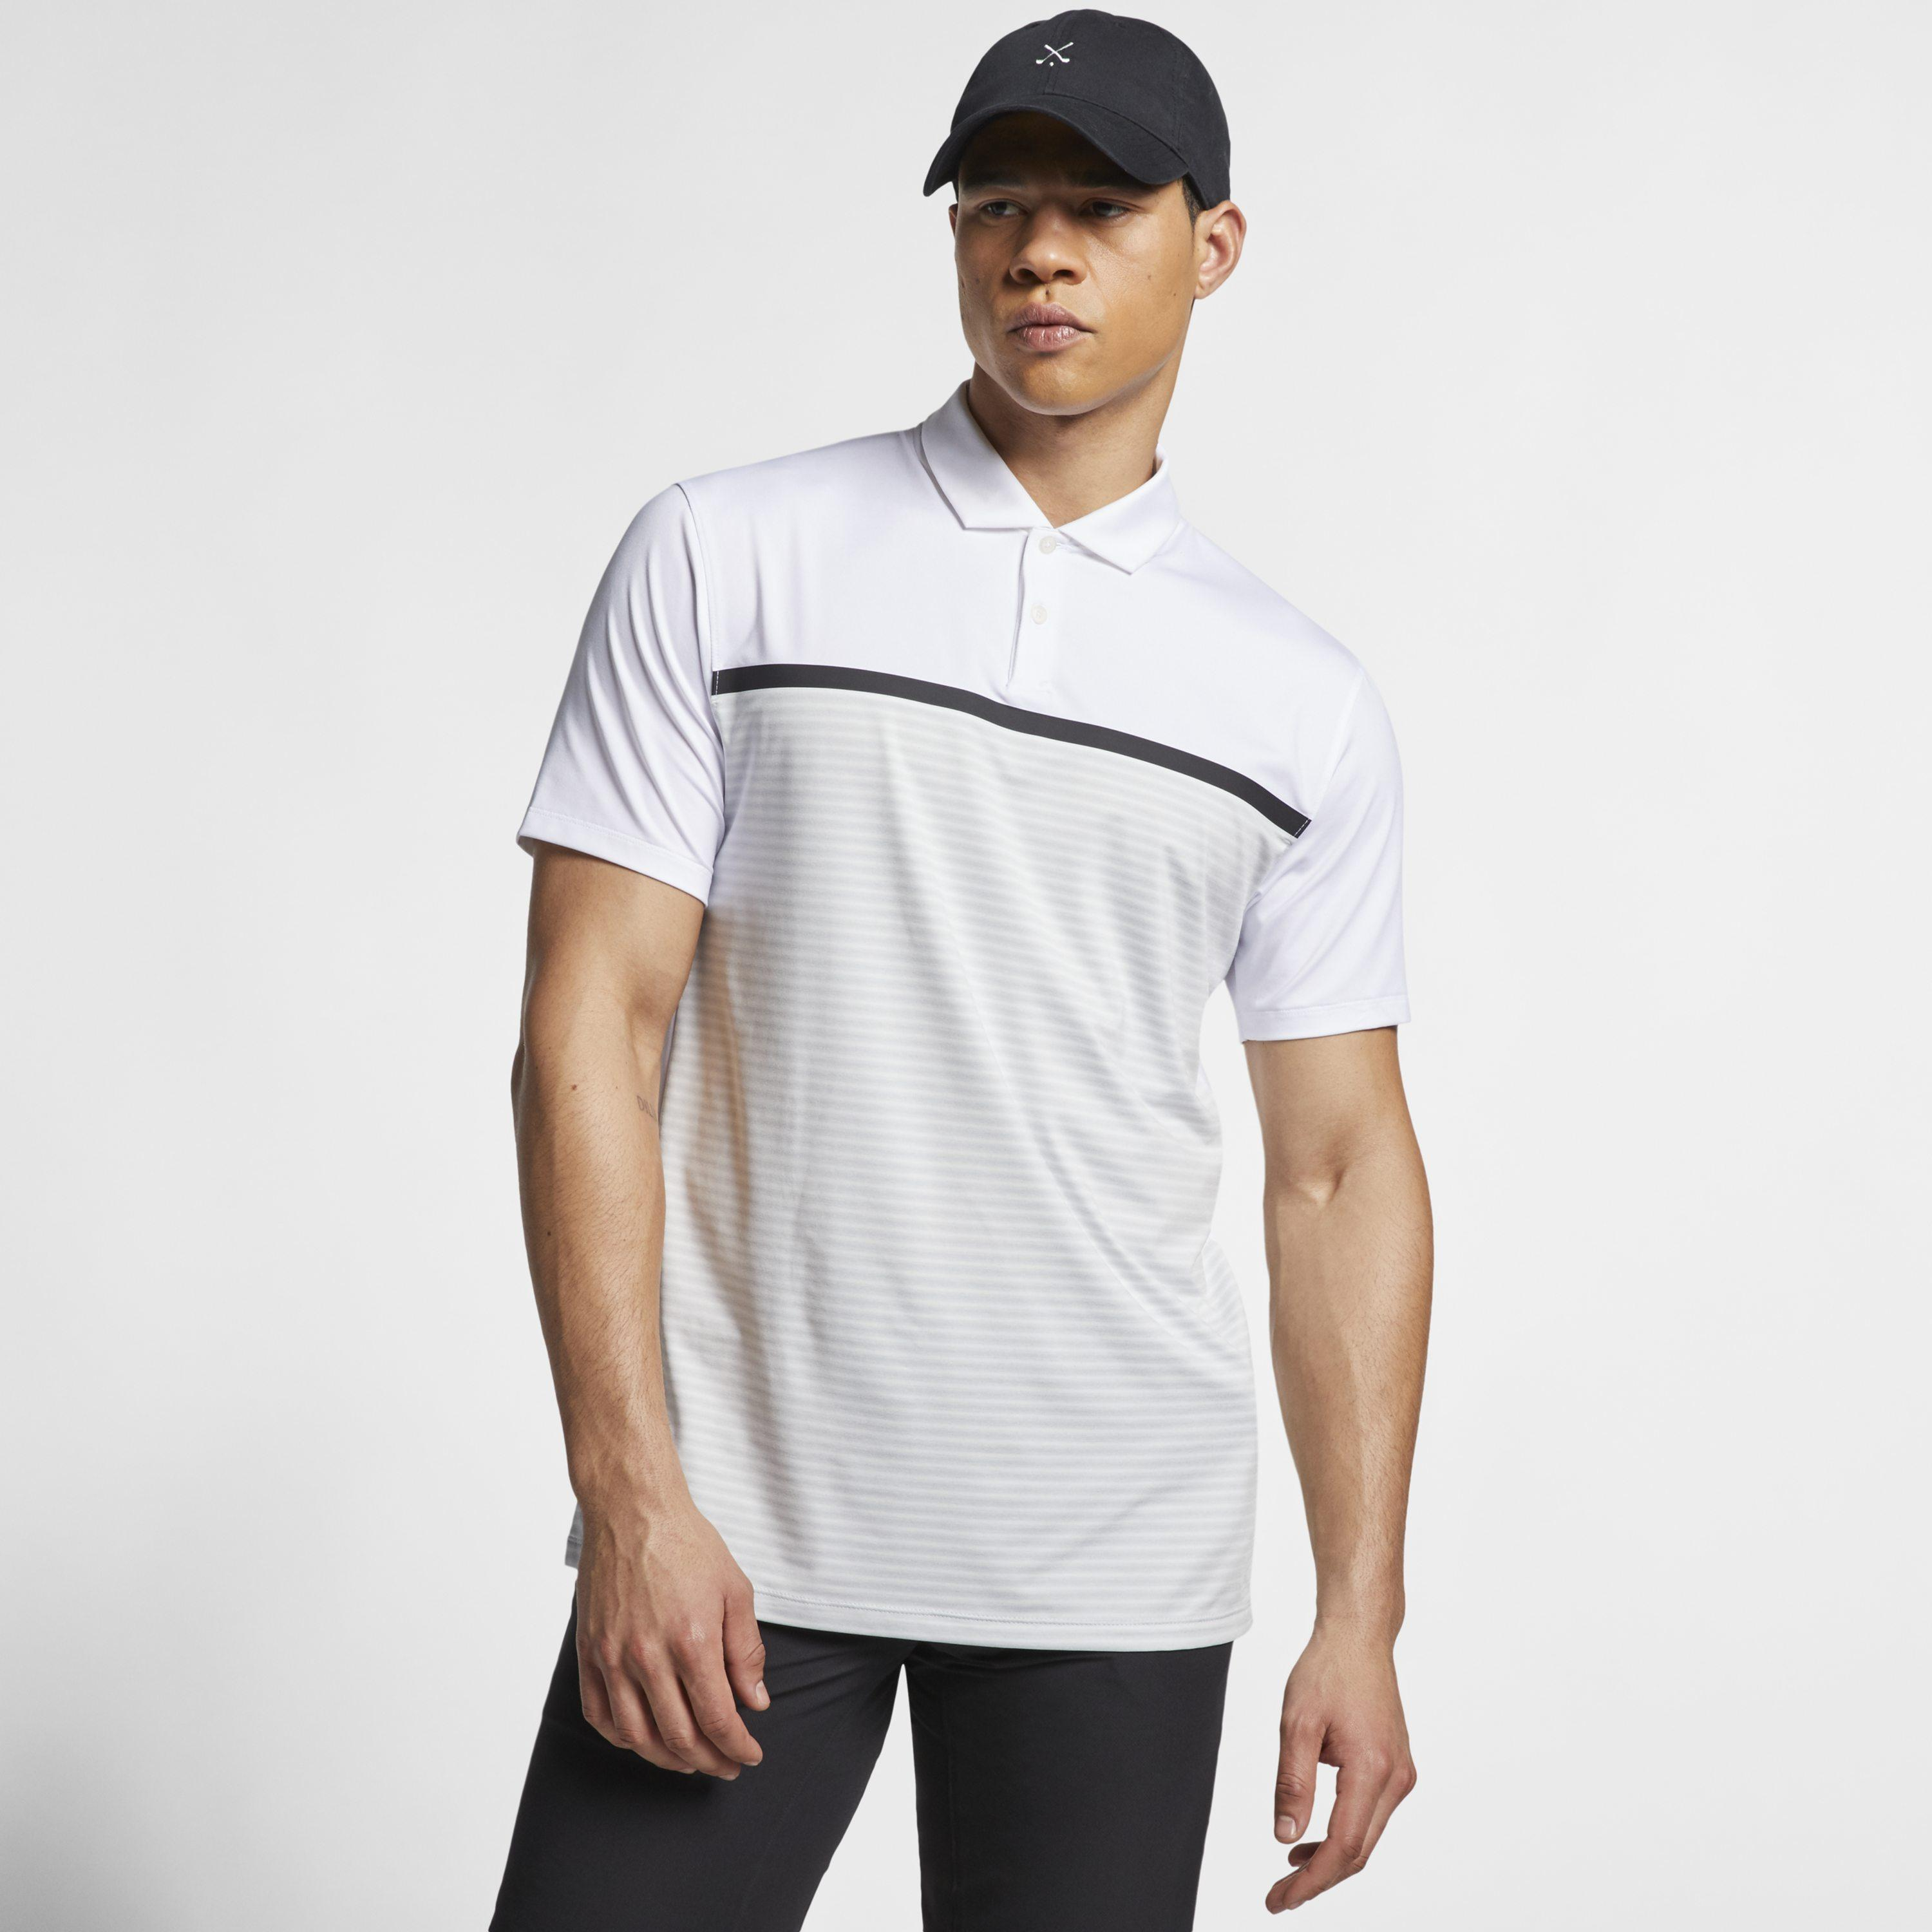 df95392d1 Nike Golf Dri-fit Short-sleeve Tw Vapor Colorblock Polo in White for ...